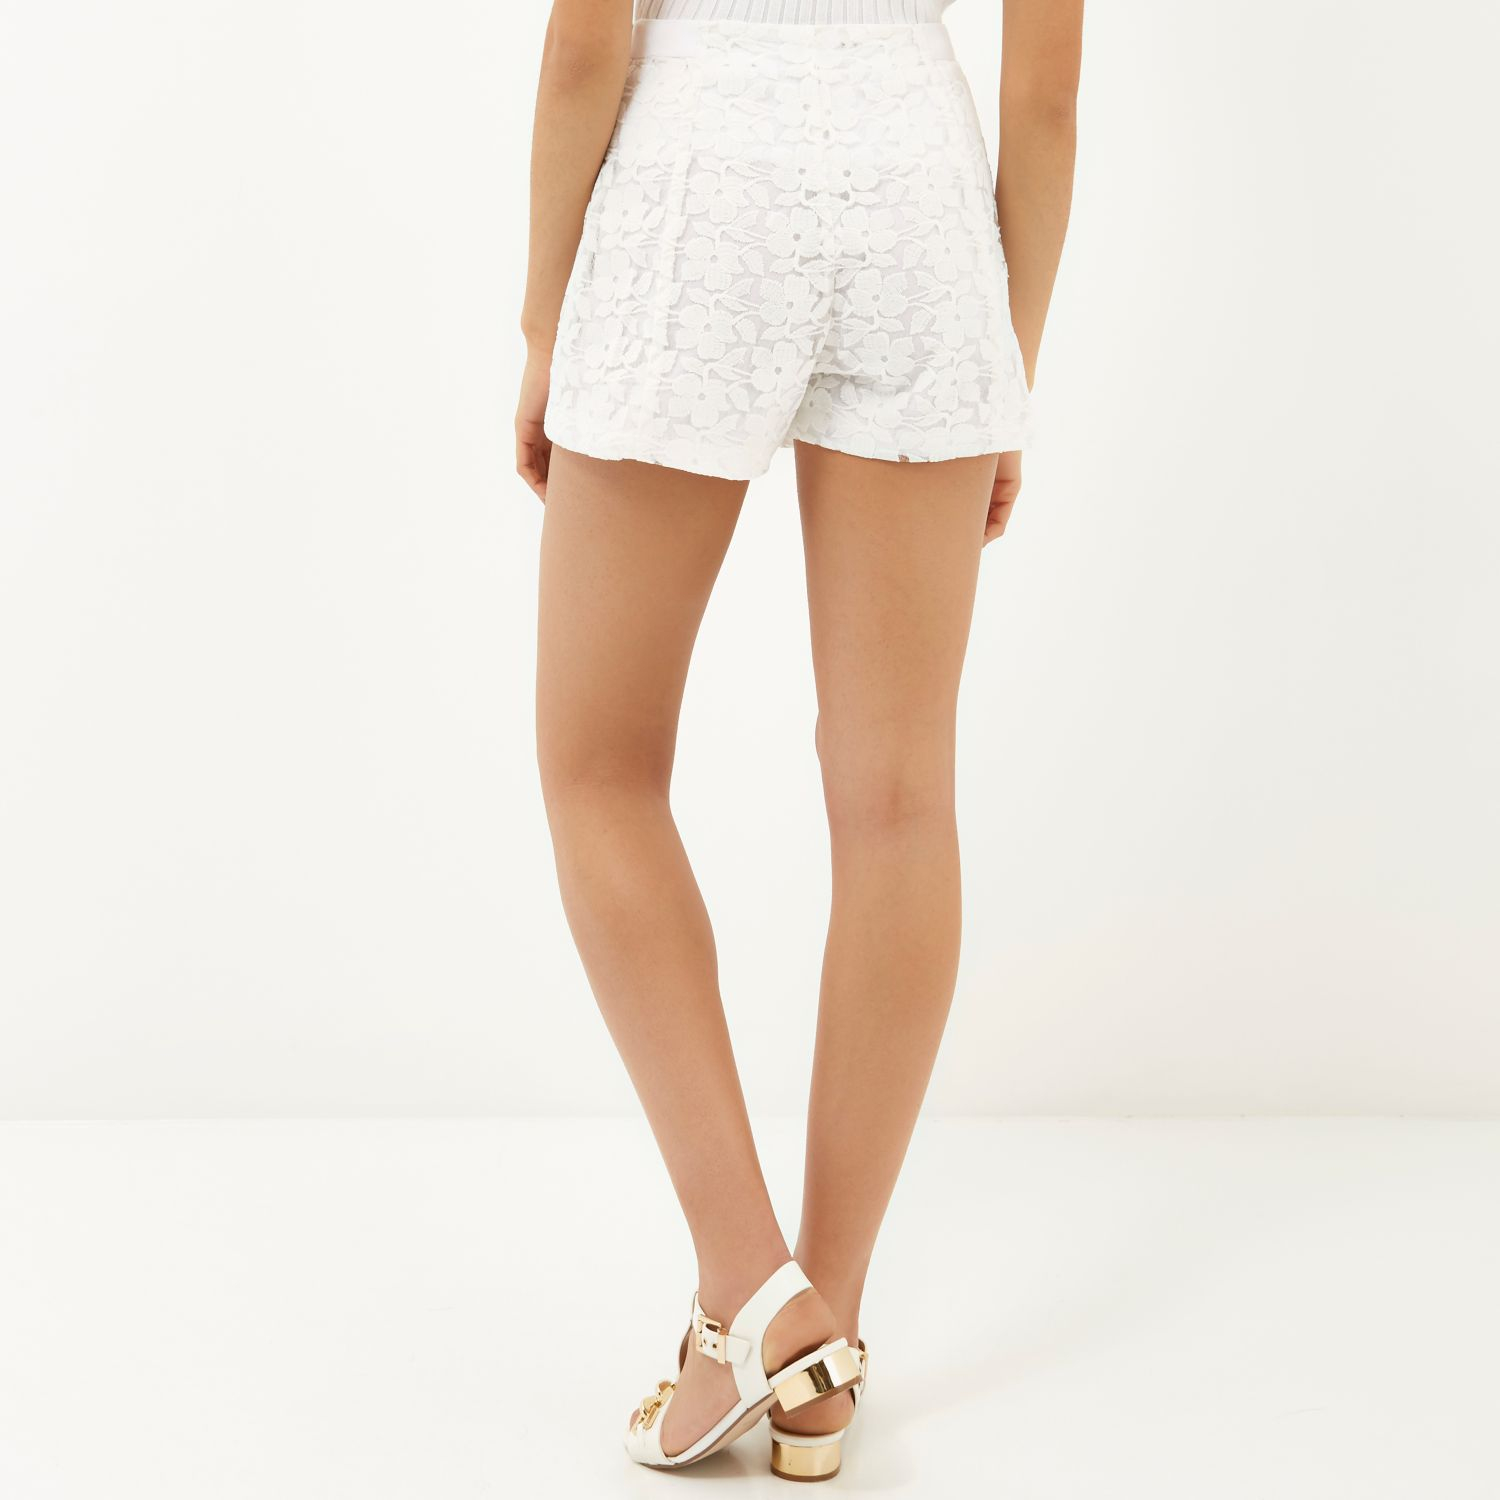 River island White Lace High Waisted Shorts in White | Lyst